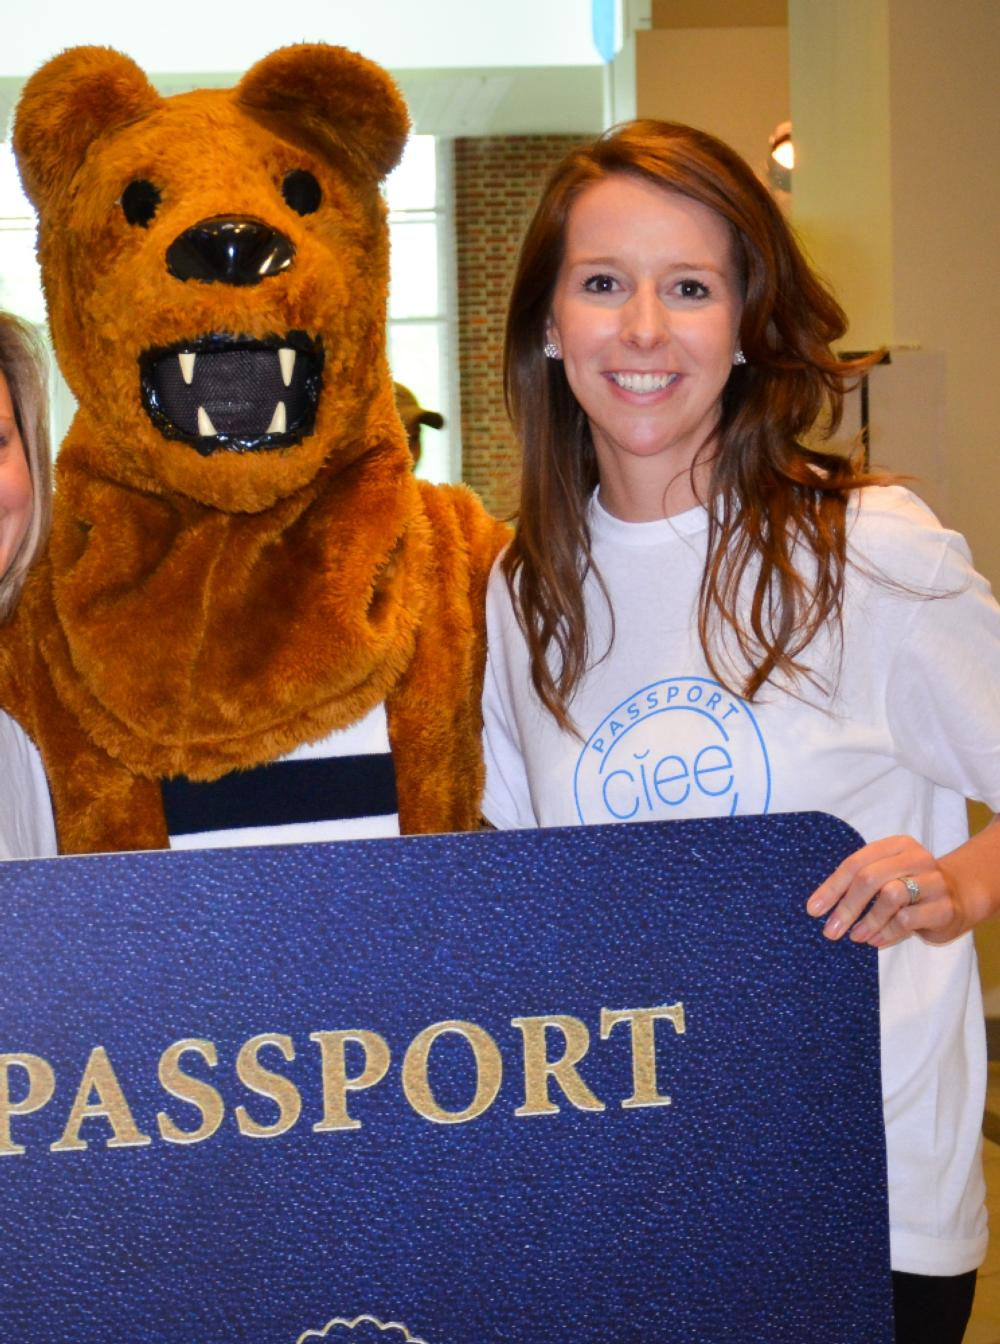 Kate and the Nittany Lion